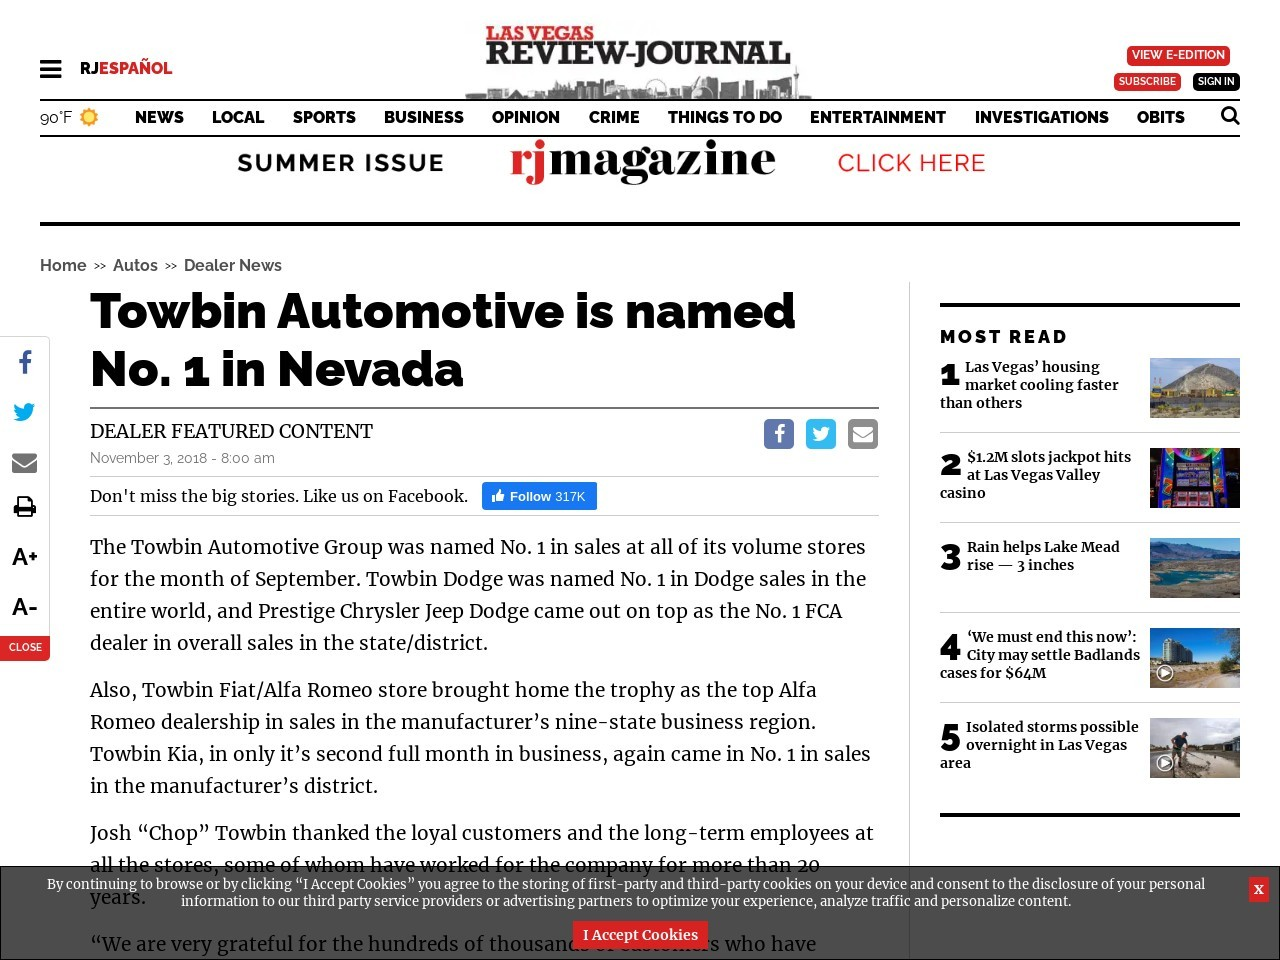 Towbin Automotive is named No. 1 in Nevada